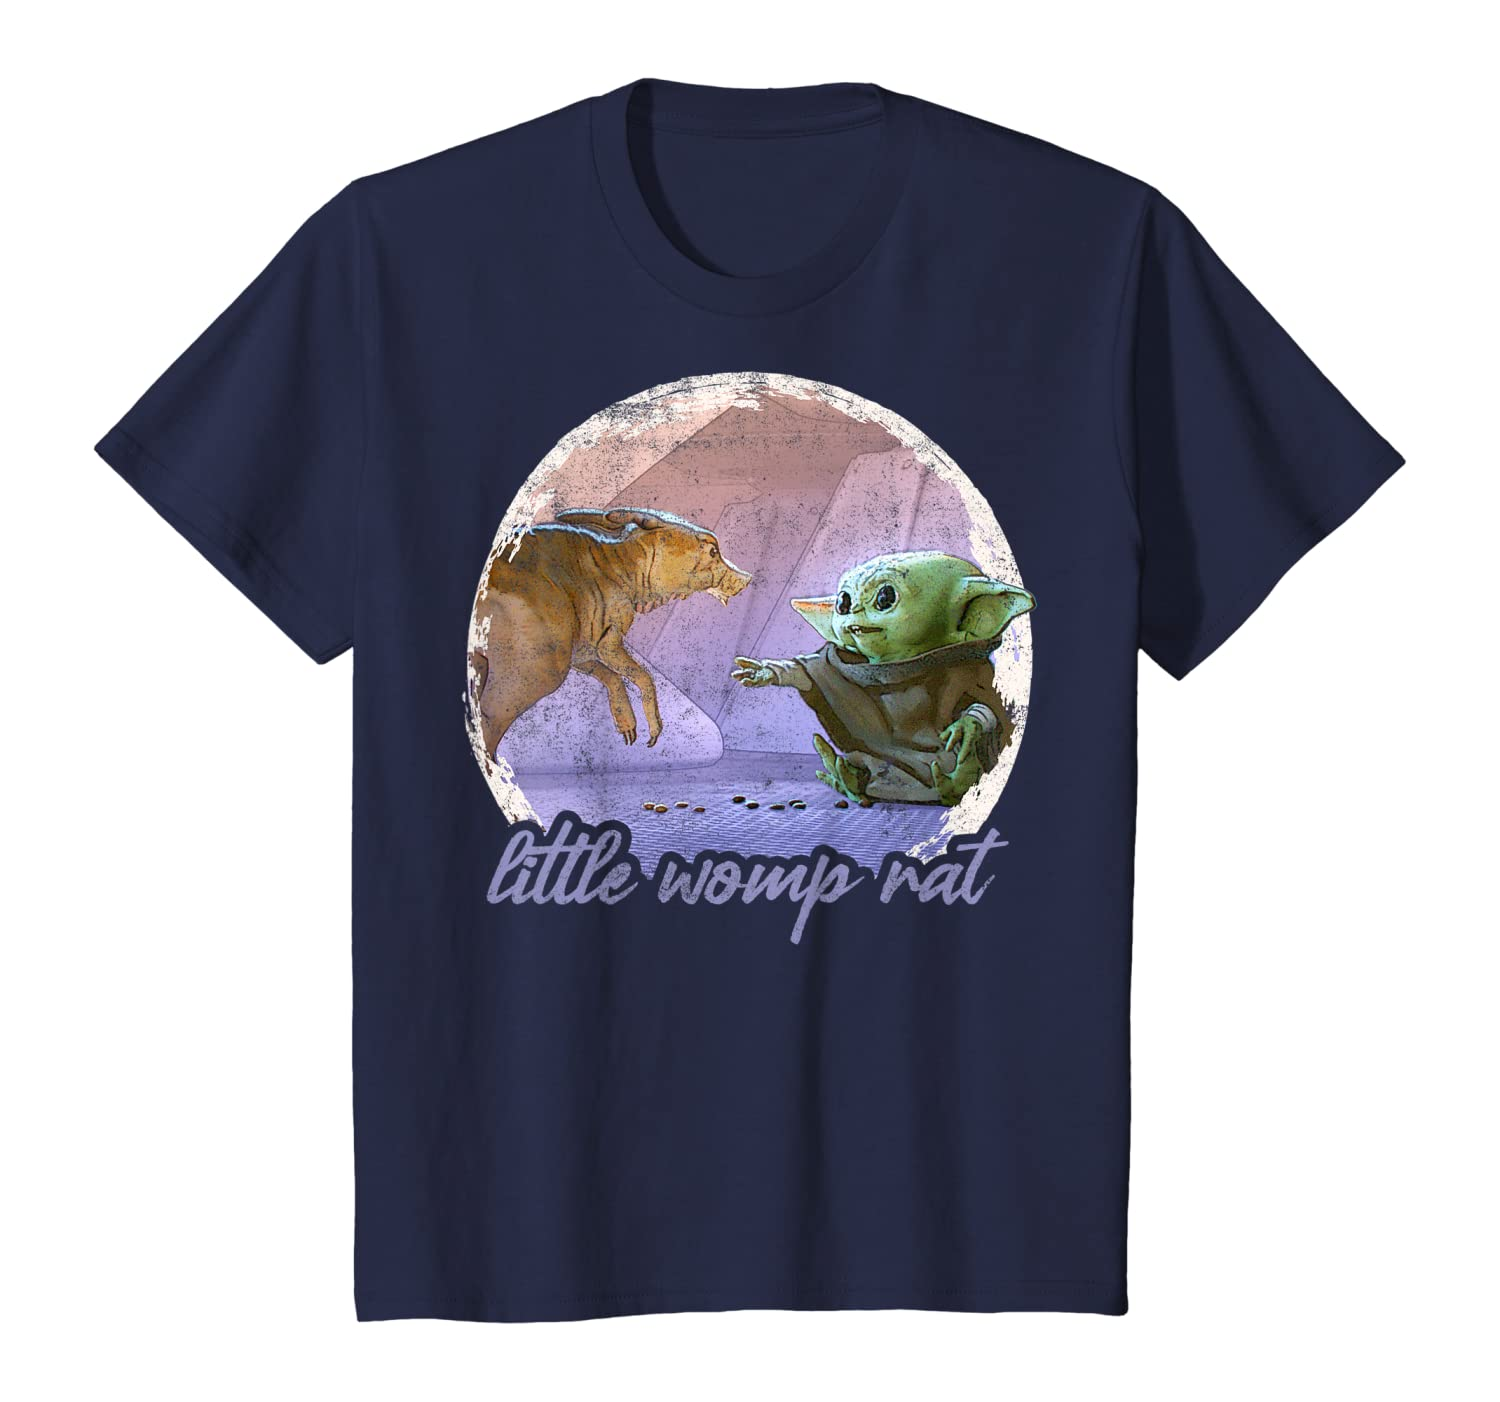 Amazon Com Star Wars The Mandalorian The Child Womp Rat Concept Art T Shirt Clothing I guess every once in a while, both suns shine on a womp rat's tail, vanth says of his good fortune, in reference to tatooine's twin suns. amazon com